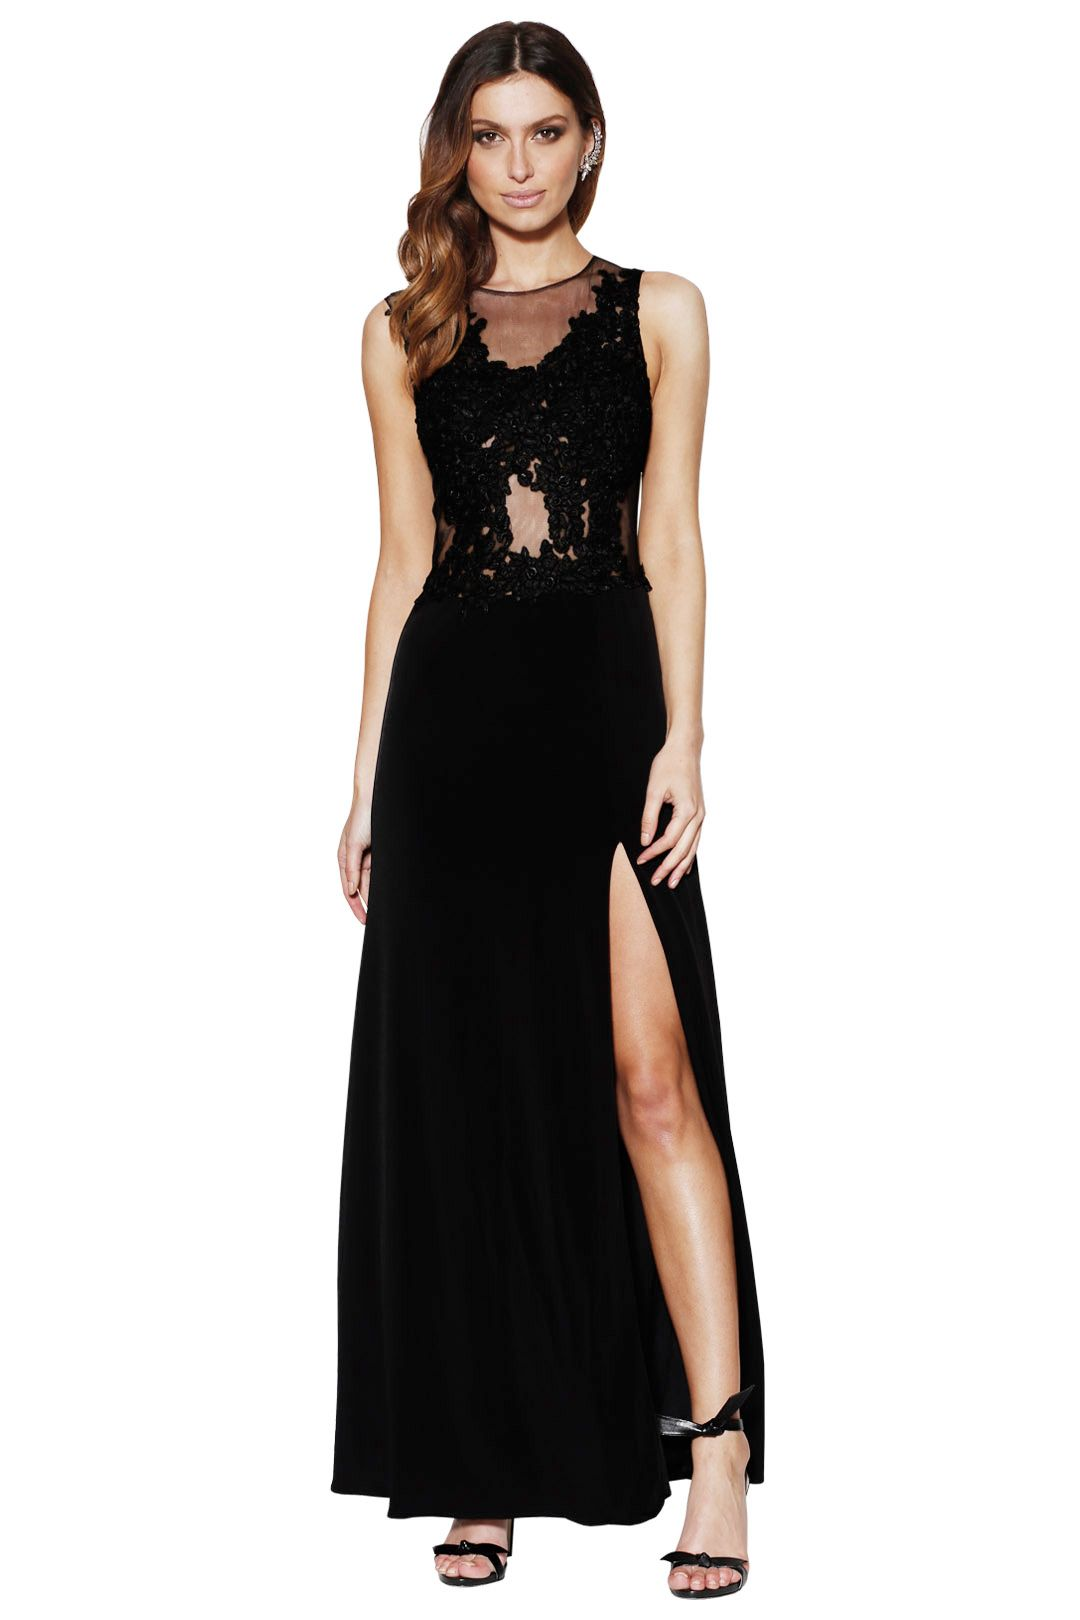 Grace and Hart - Starlet Gown Black - Front